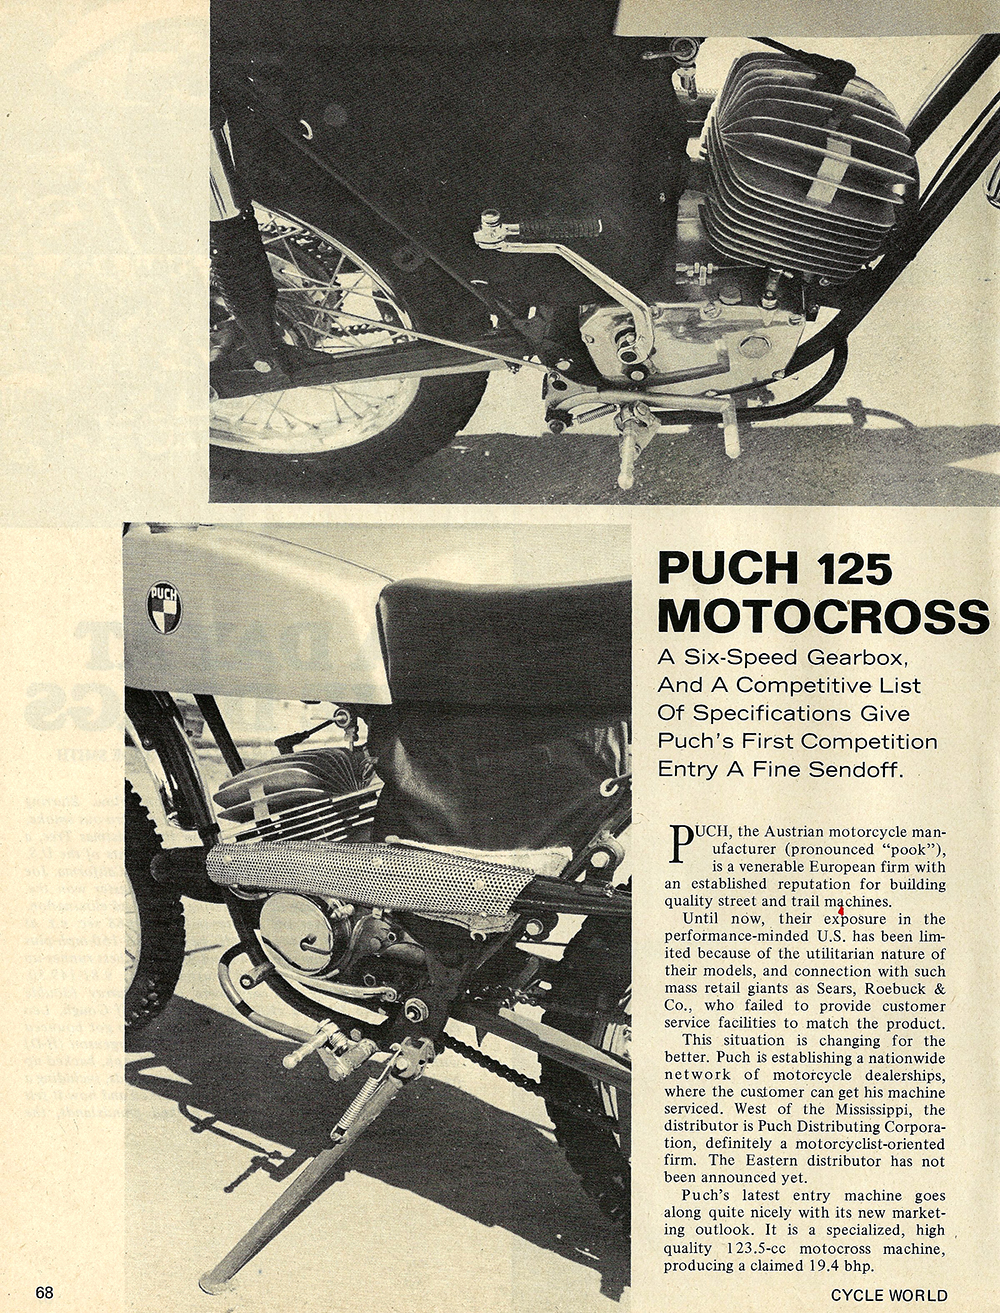 1970 Puch 125 Motocross road test 01.jpg